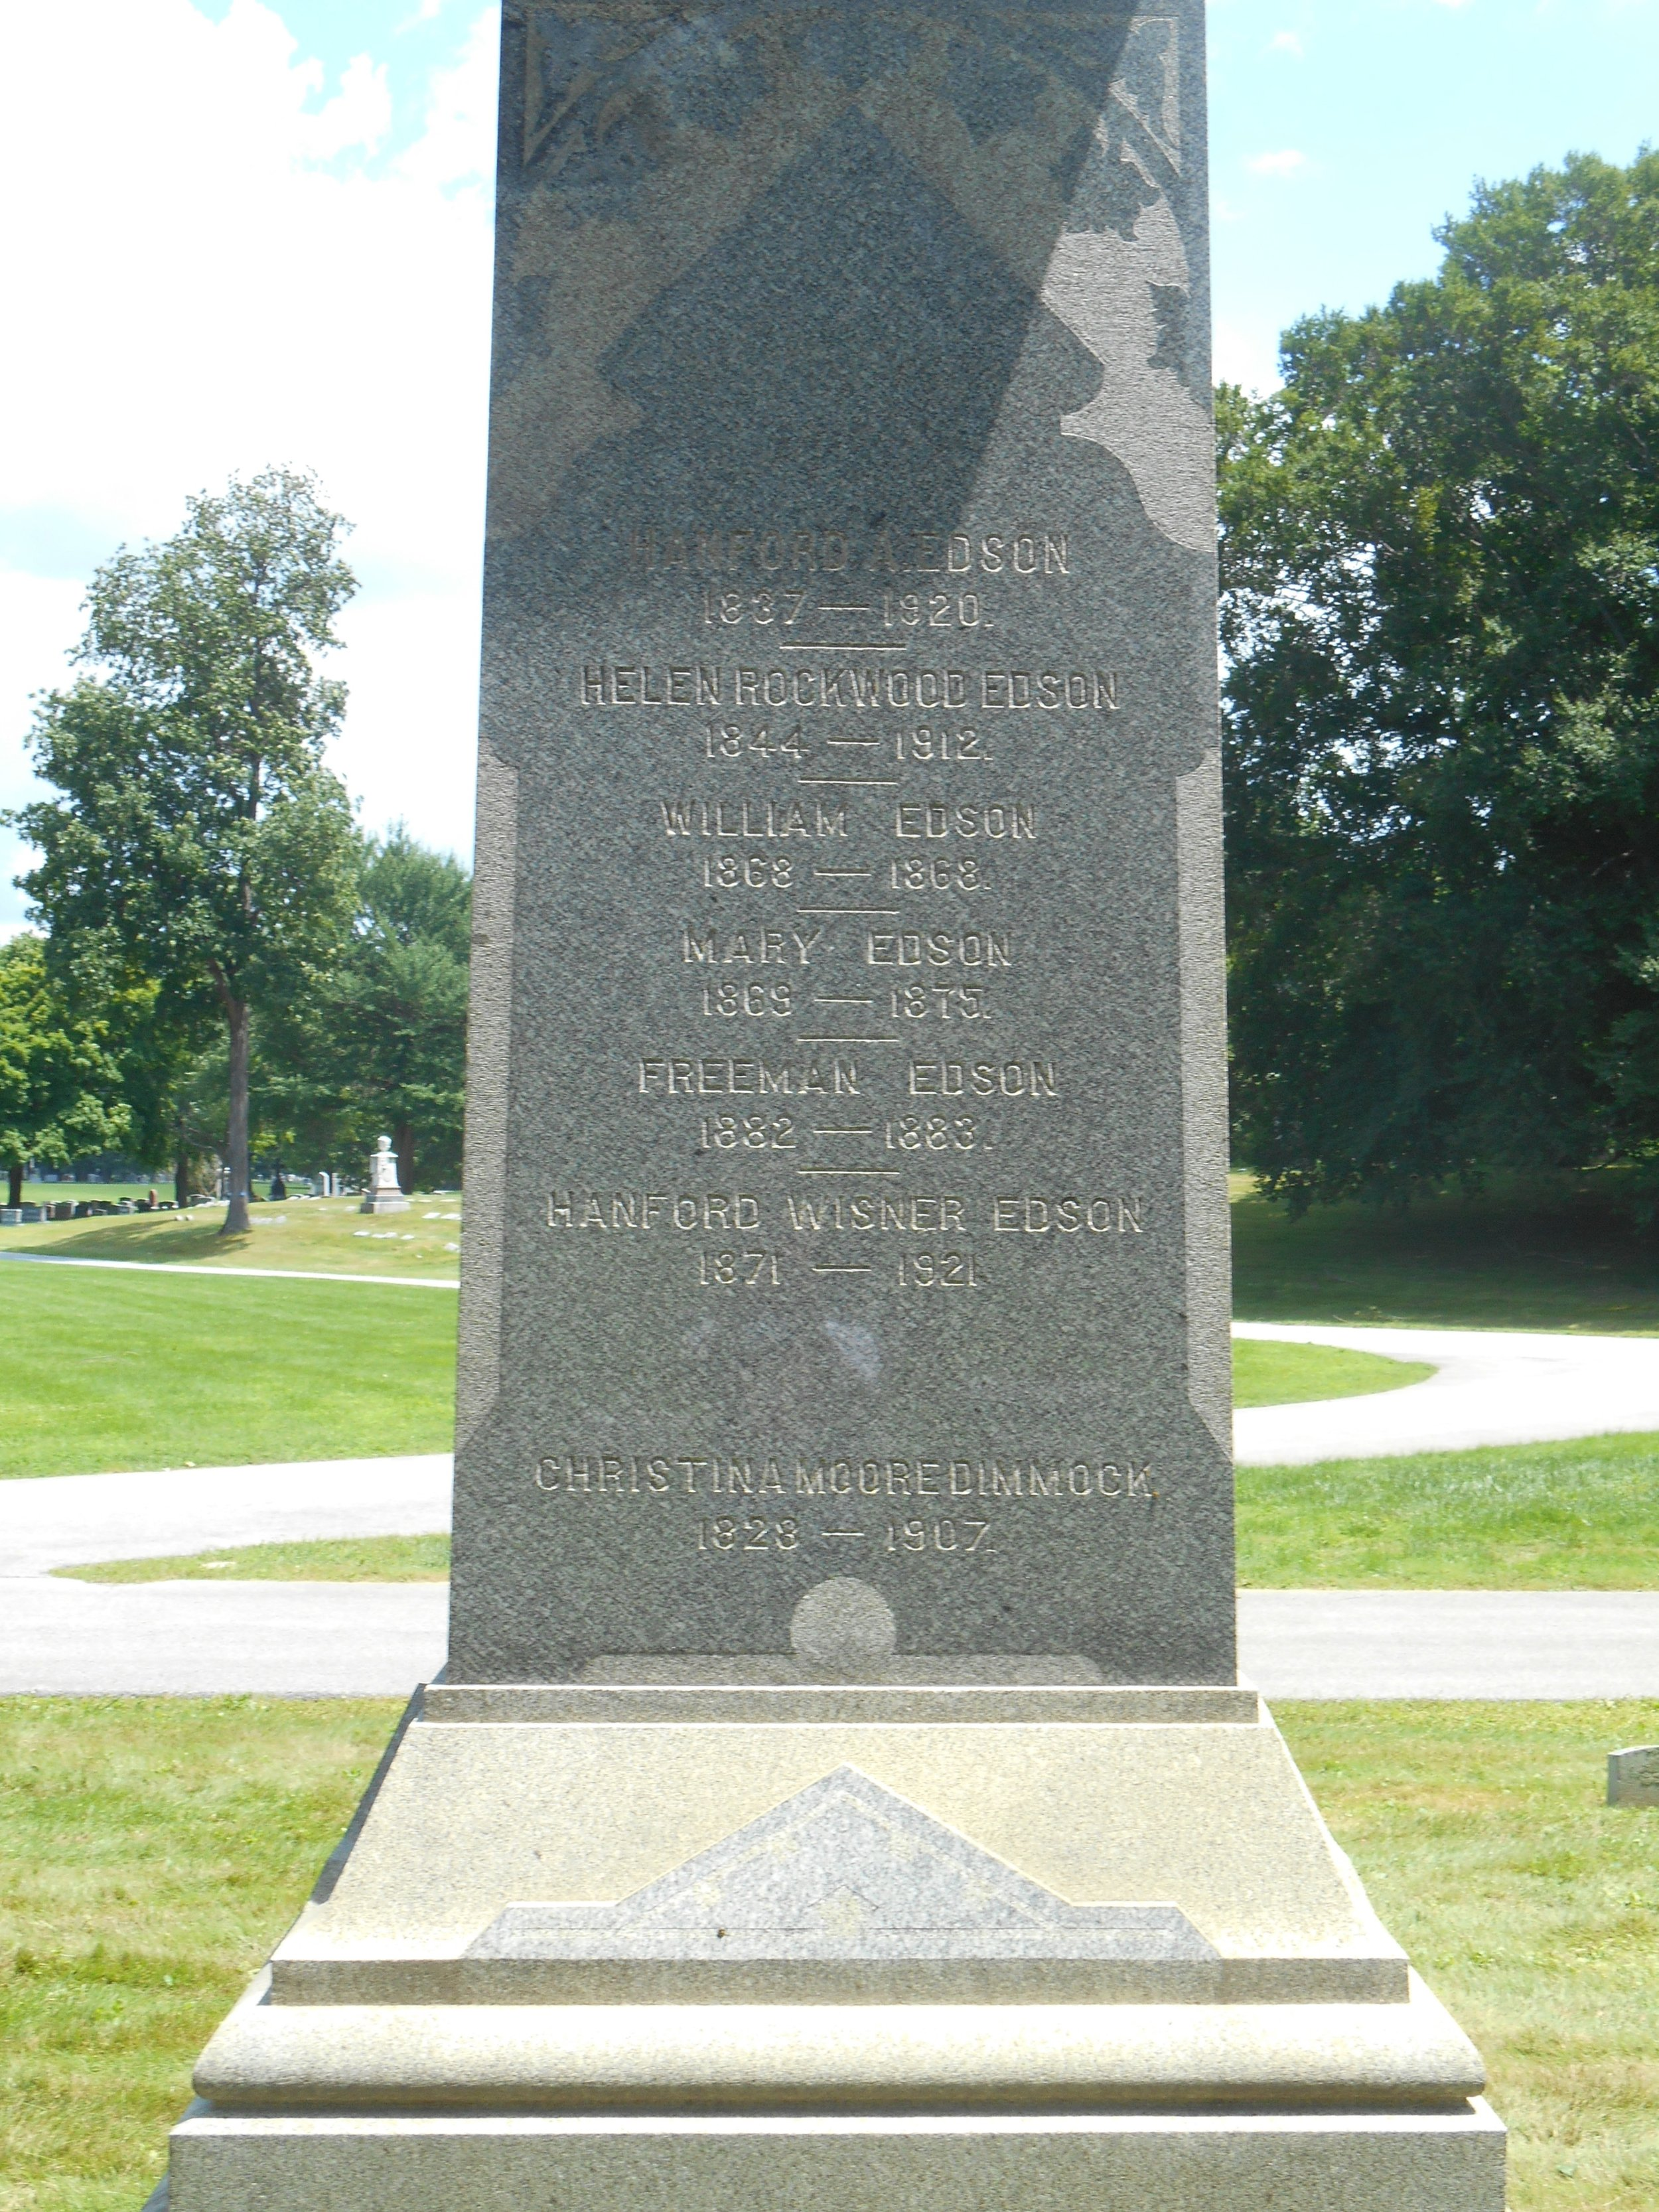 Hanford Abram Edson is buried at Crown Hill Cemetery, Indianapolis, Indiana.